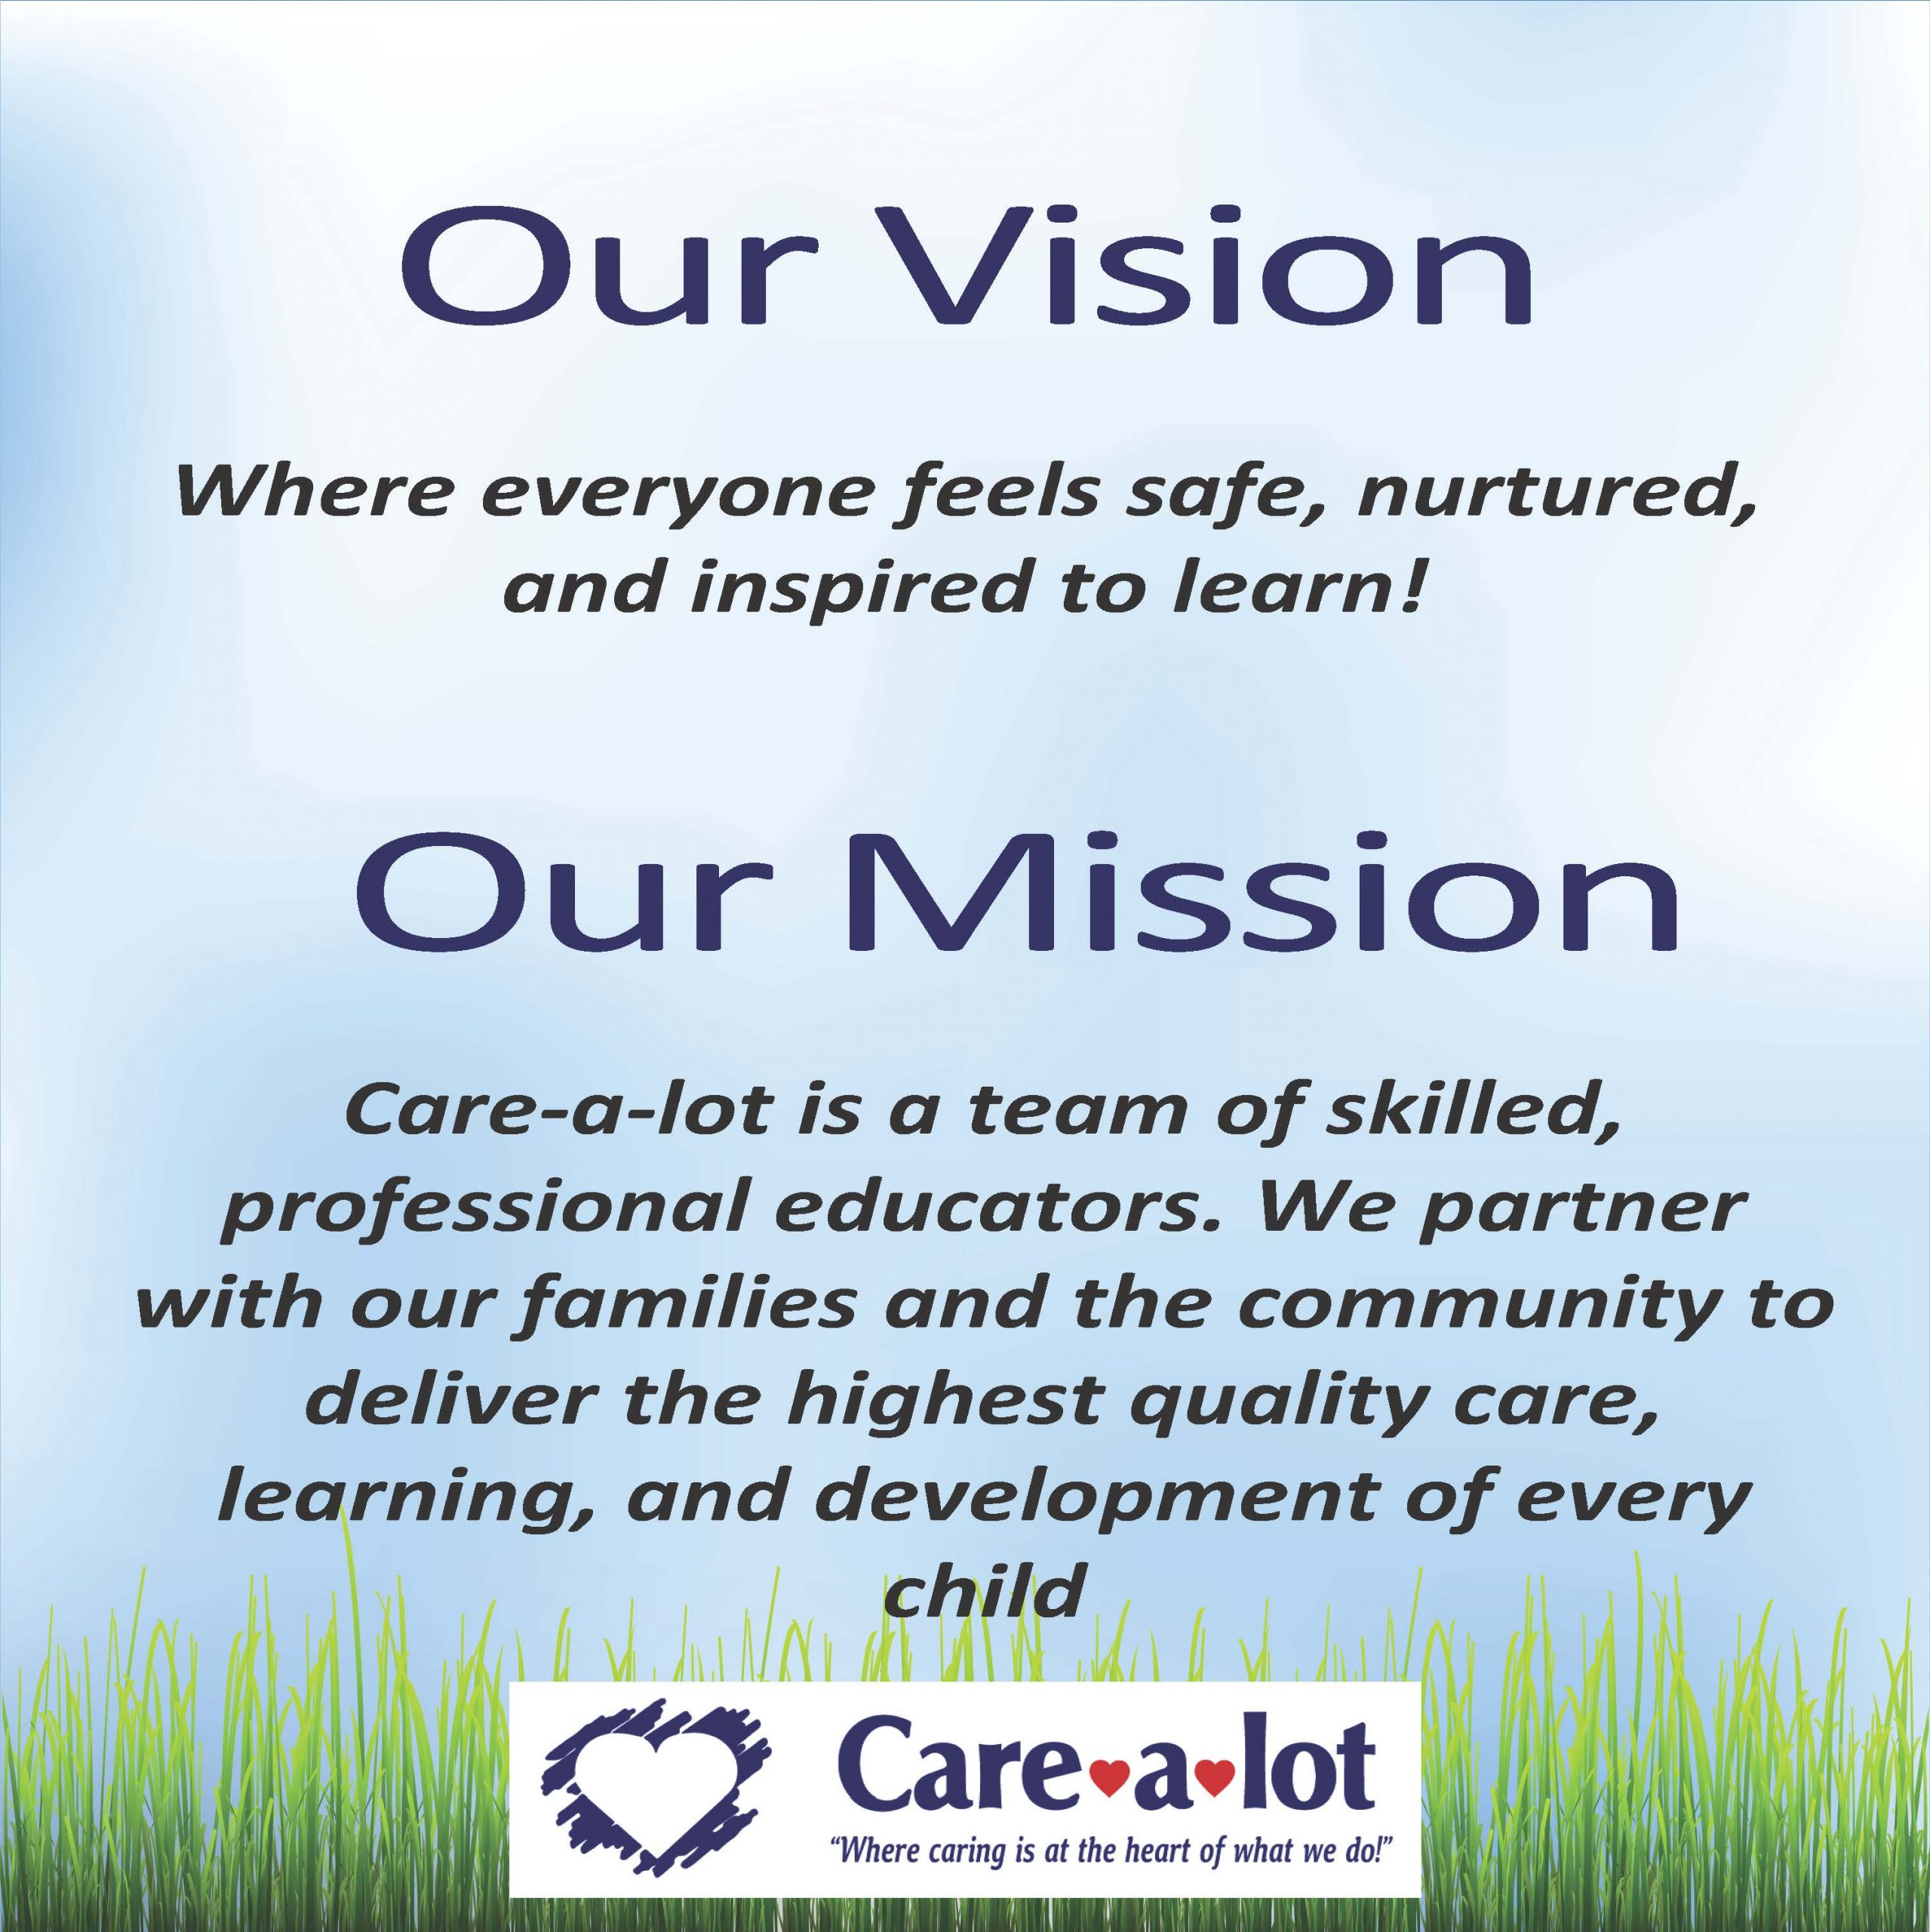 mission statement for Care a lot day care